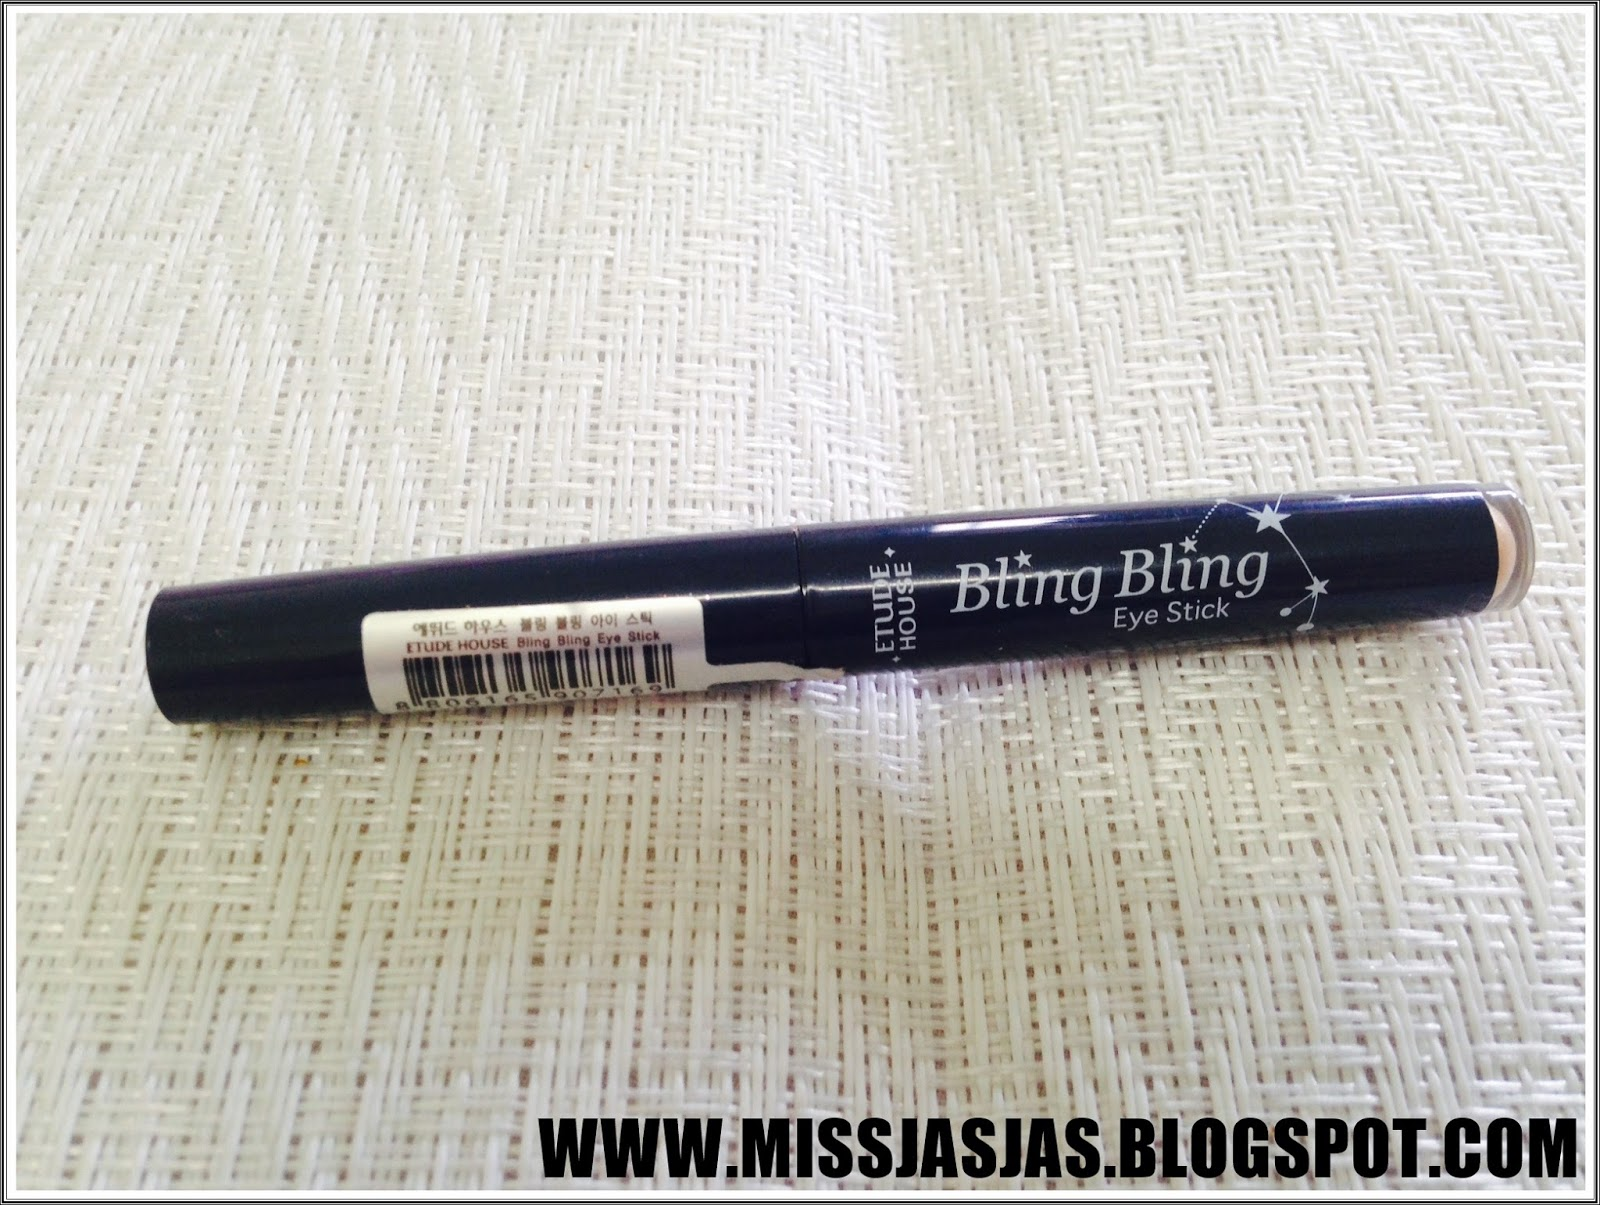 Sponsored Missjasjasxbeauty Review Etude House Bling Eye Stick This Is The 2nd Product That I Bought It With Althea Korea Credits Has These Colors